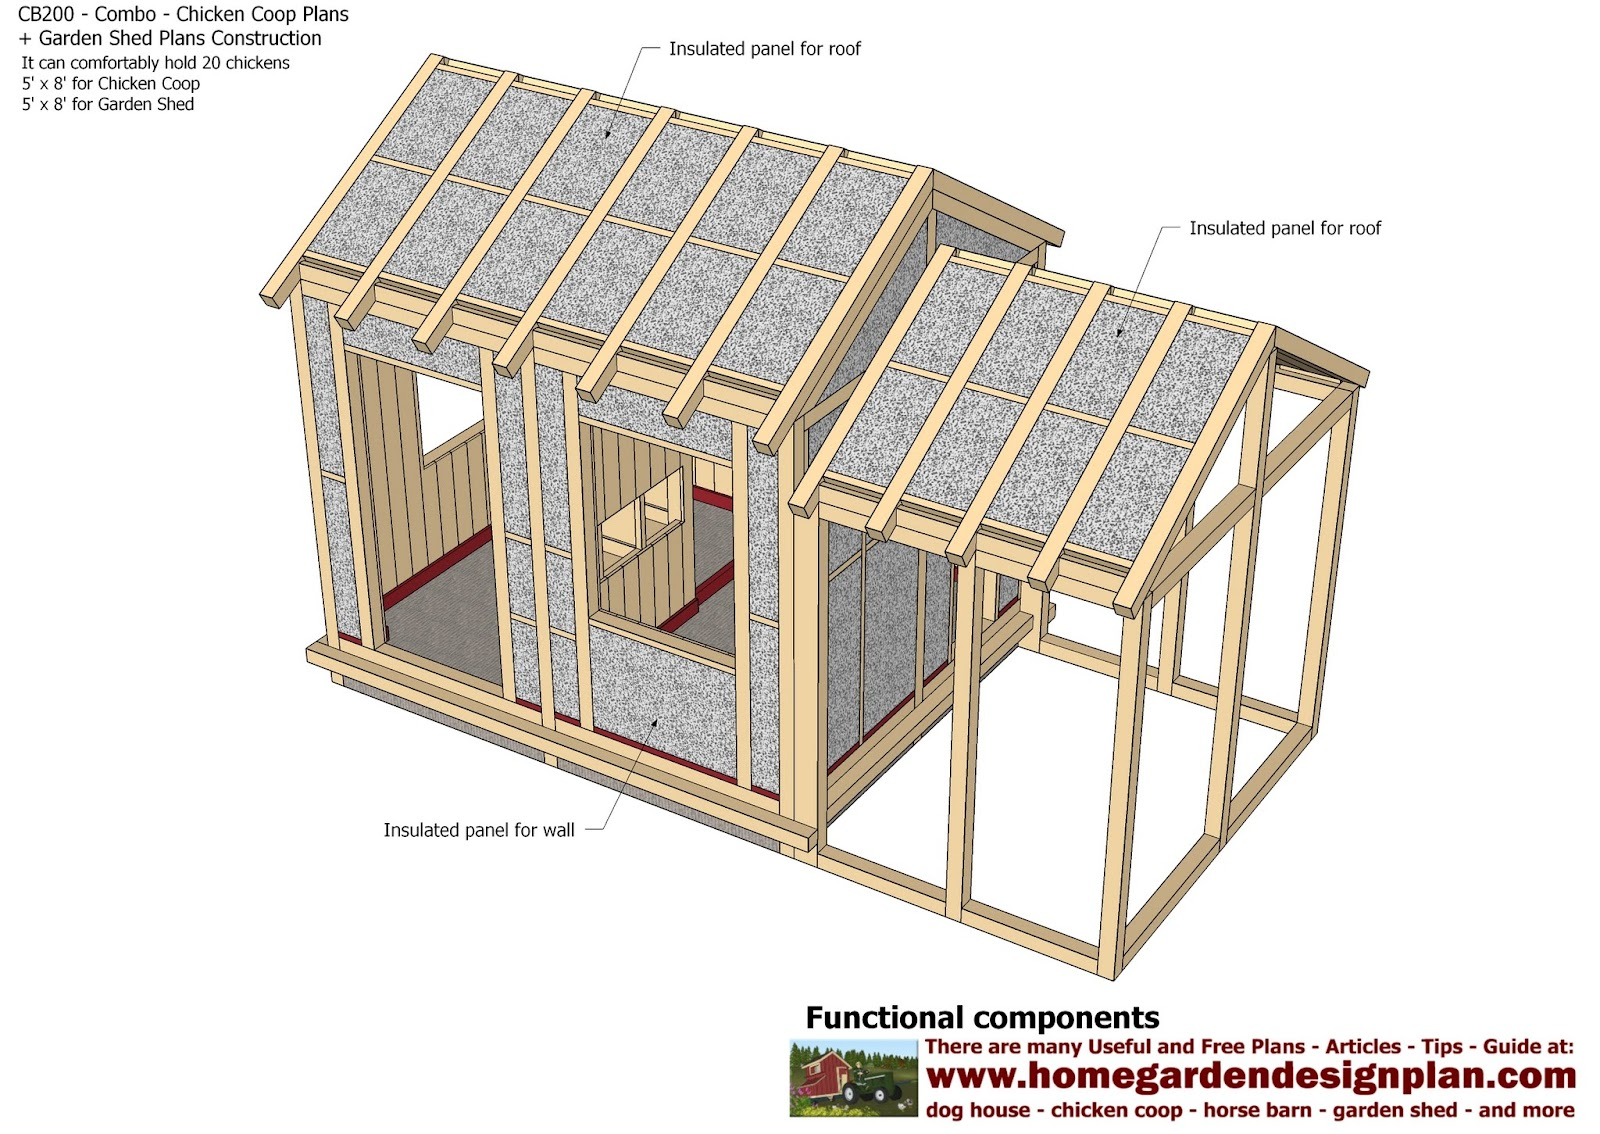 CB200   Combo Plans   Chicken Coop Plans Construction. Garden Sheds ...